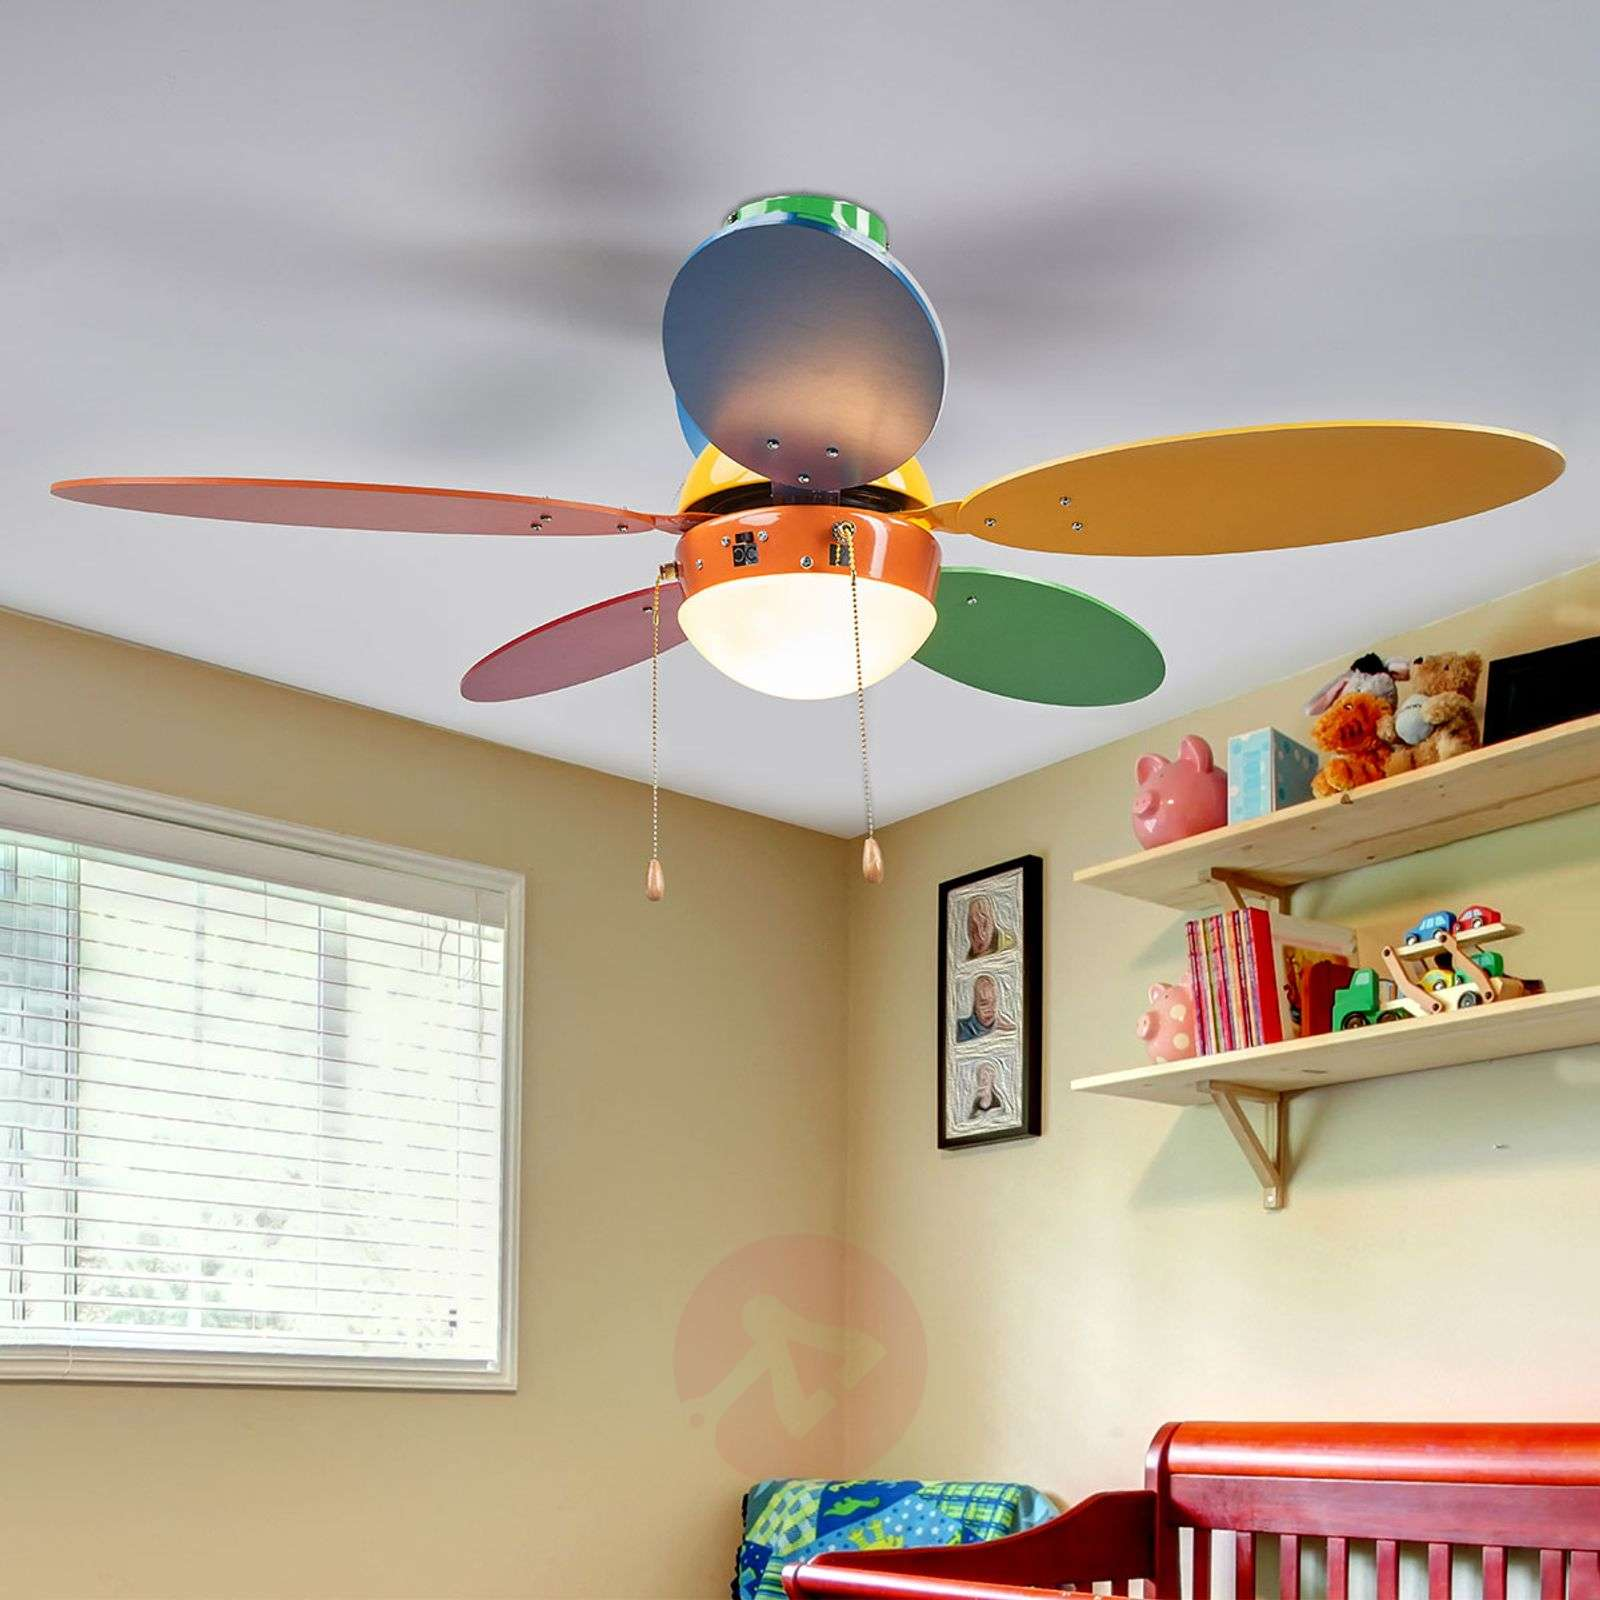 Corinna colourful ceiling fan with light-4018100-012